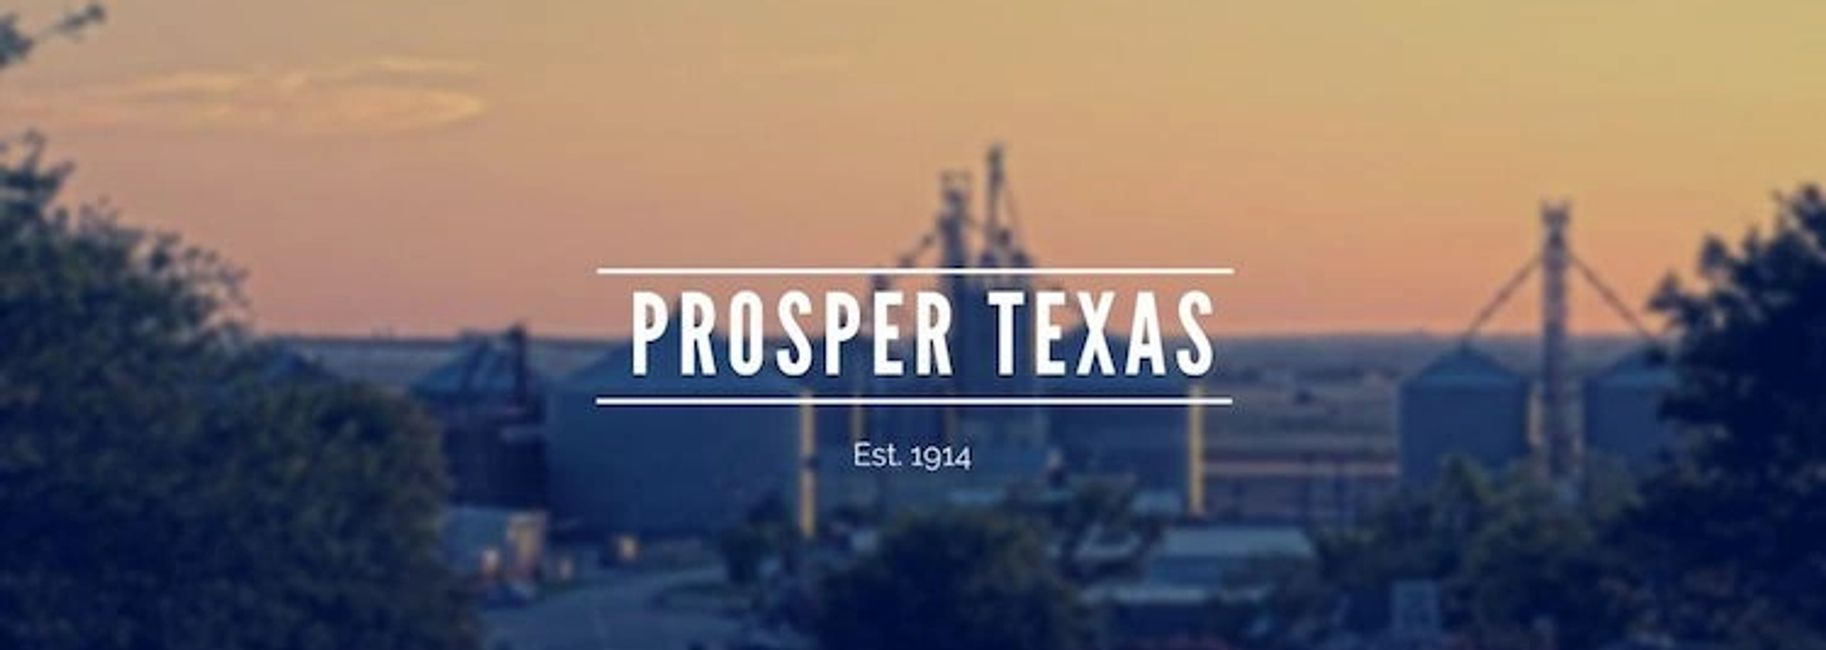 Prosper Texas air conditioning repair